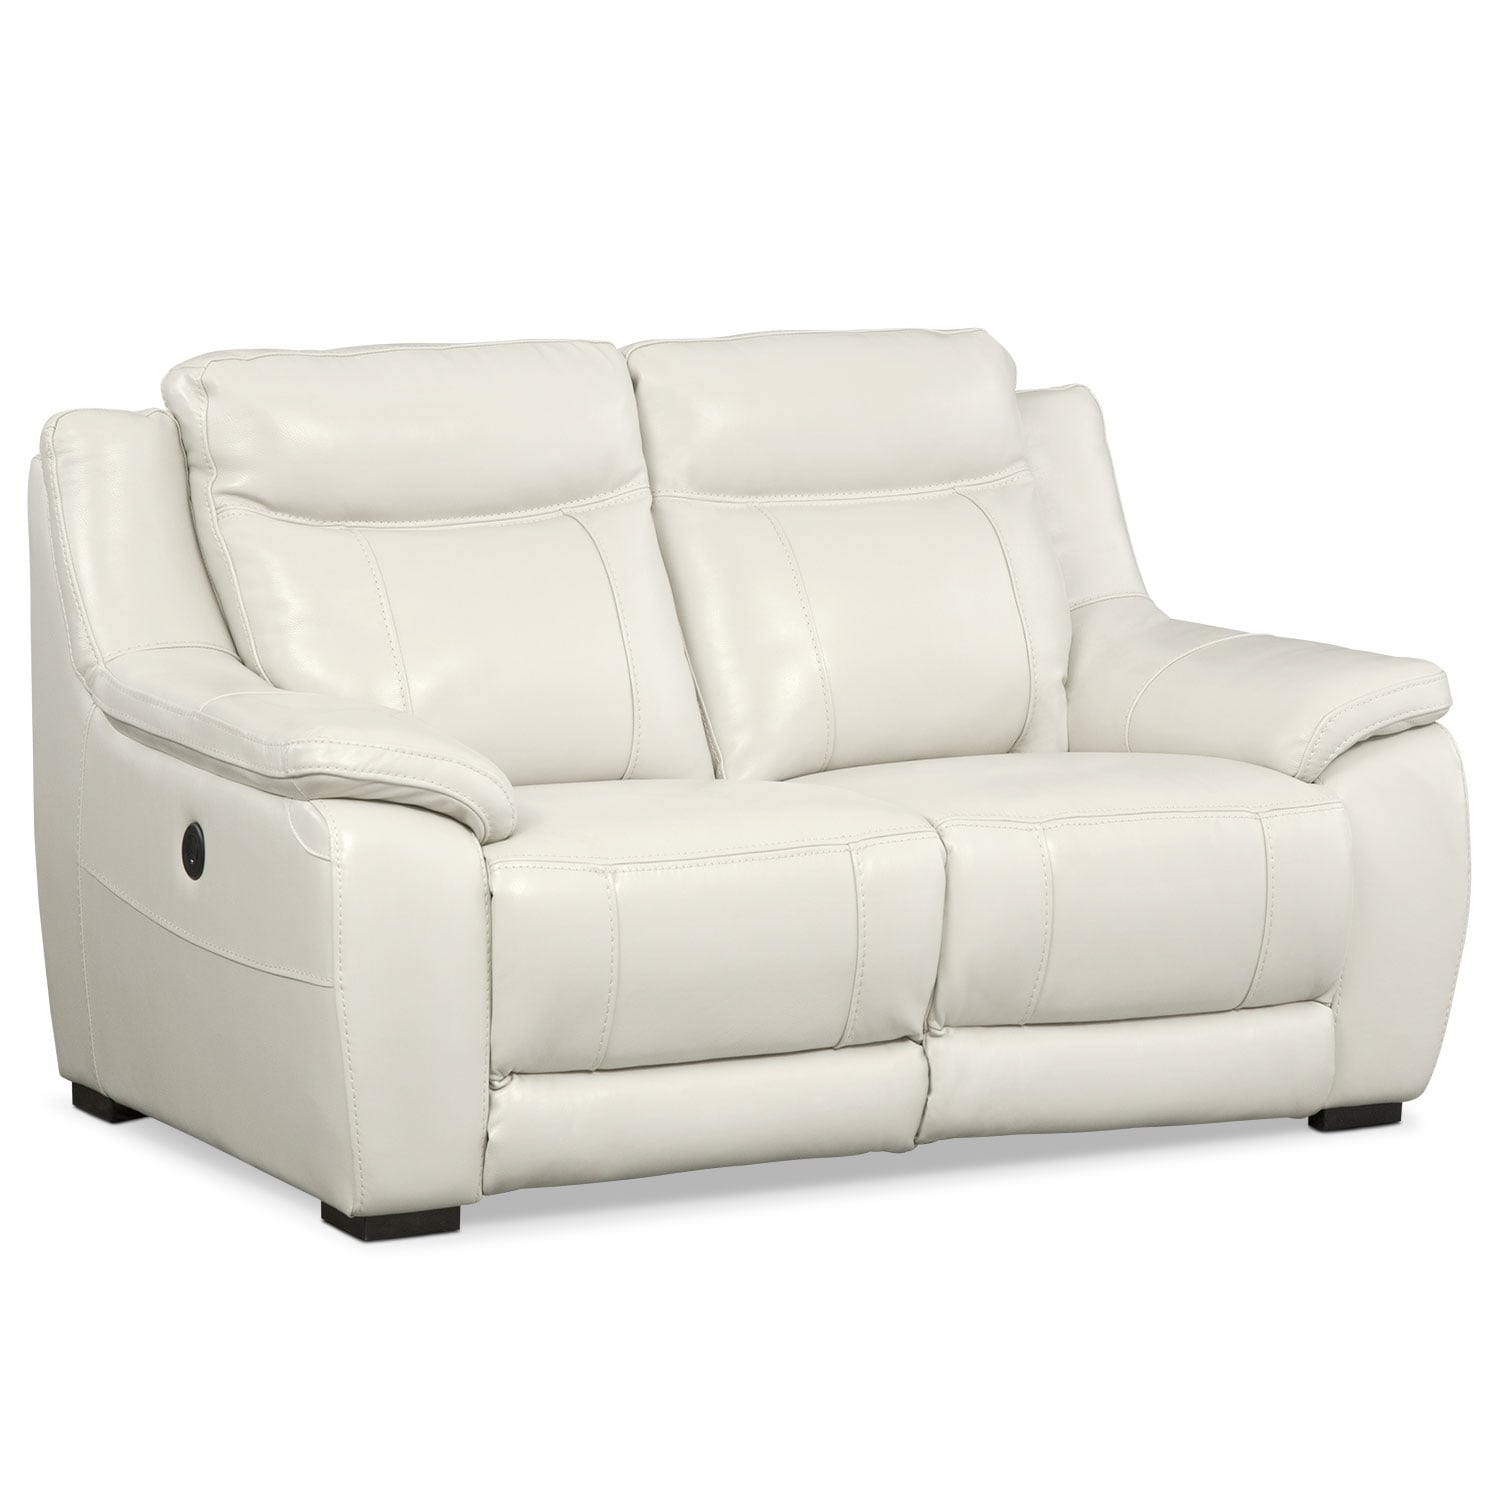 Lido power reclining sofa reclining loveseat and recliner for Couch and loveseat